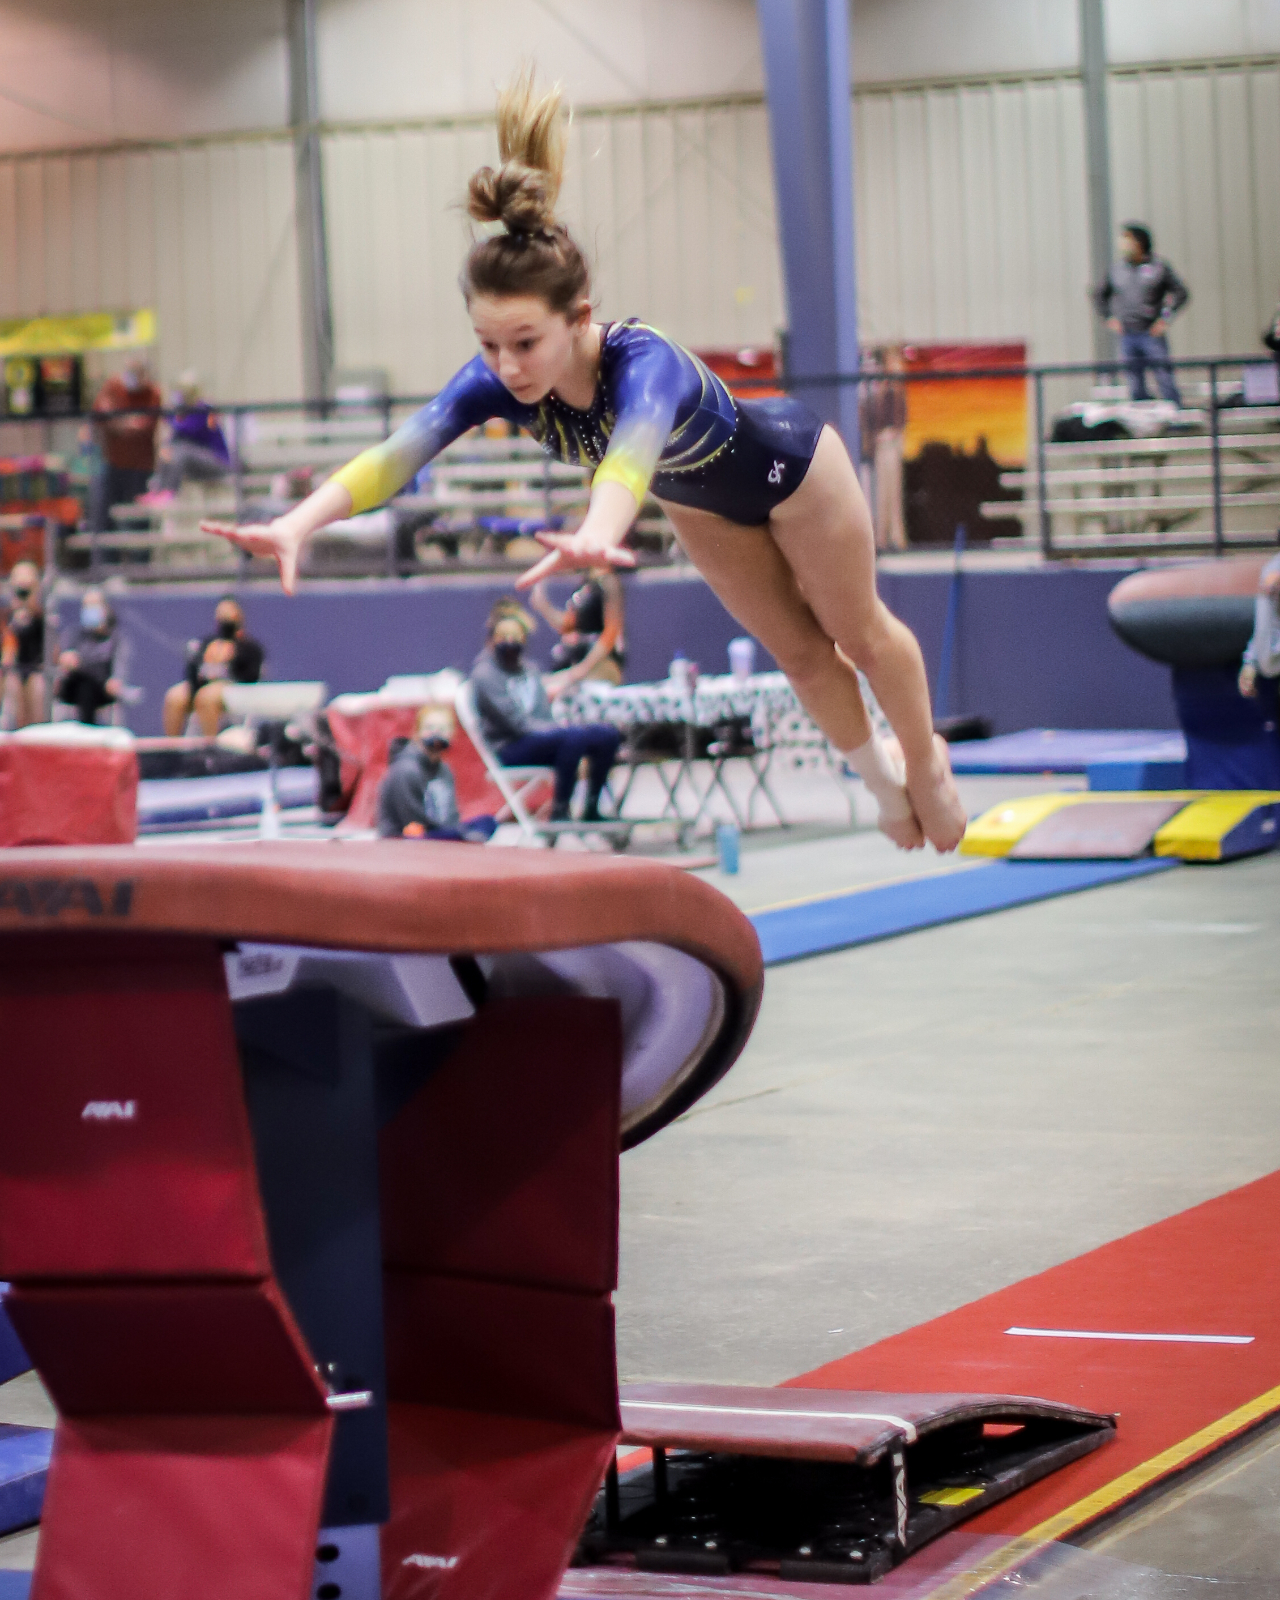 Gymnastics Photo Gallery at SWC